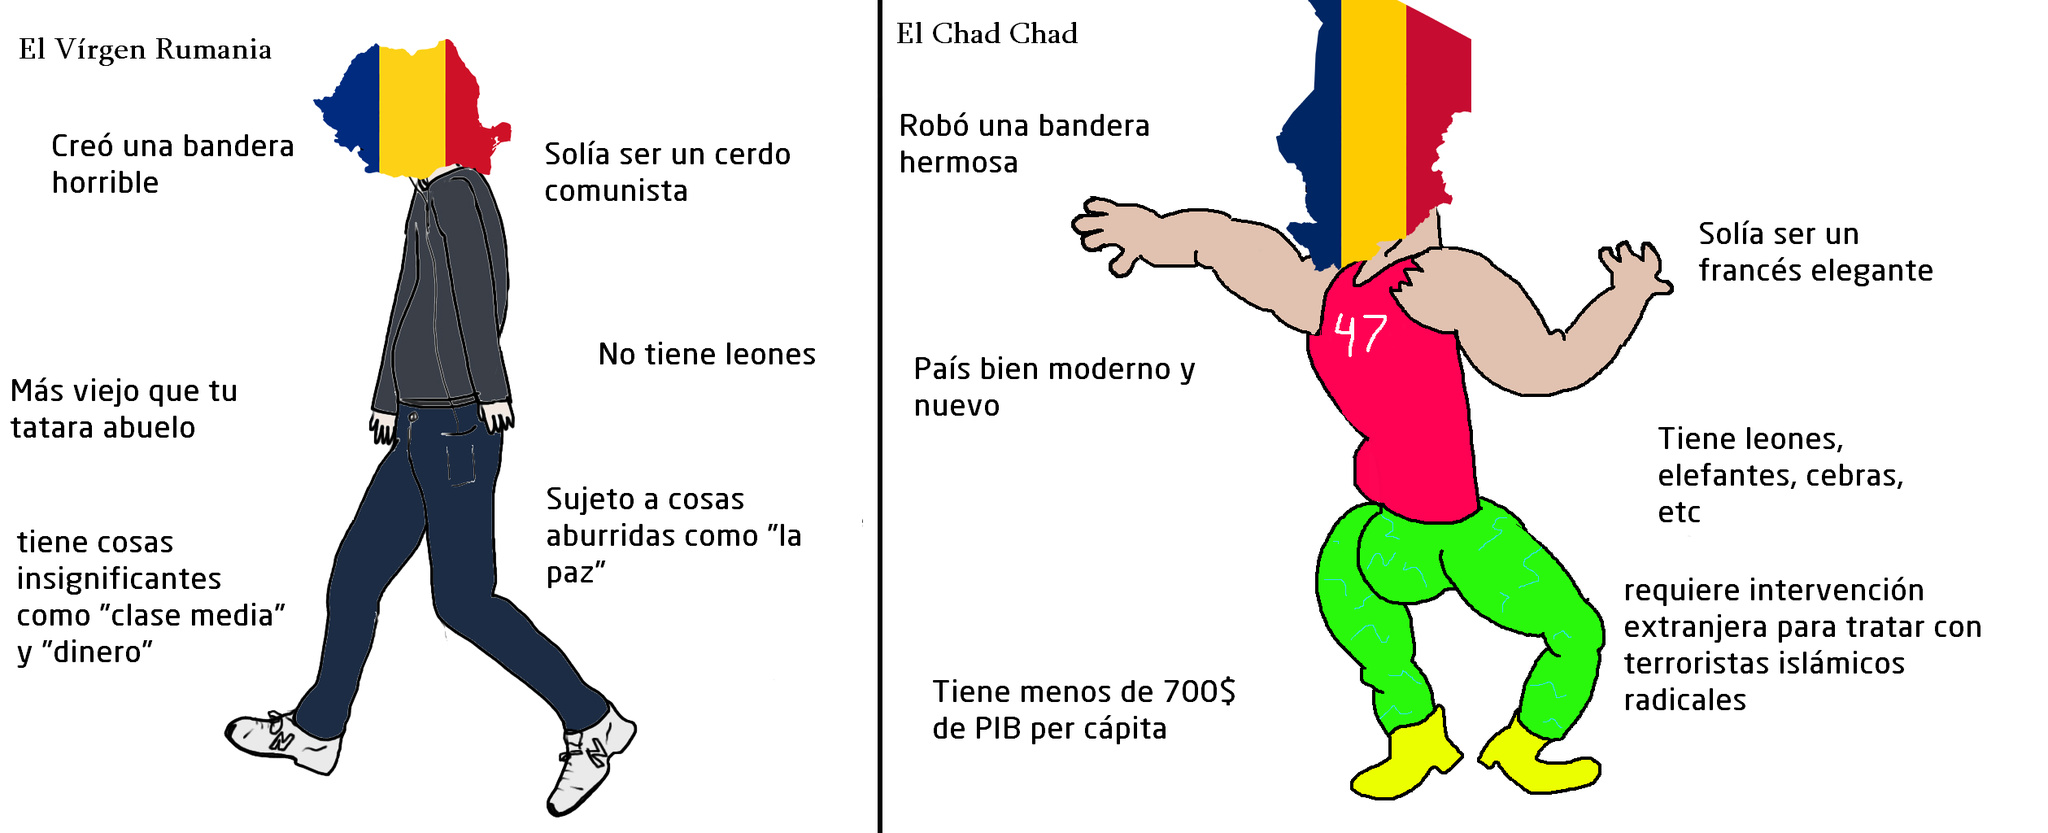 The Virgin Romania vs THE CHAD CHAD - meme